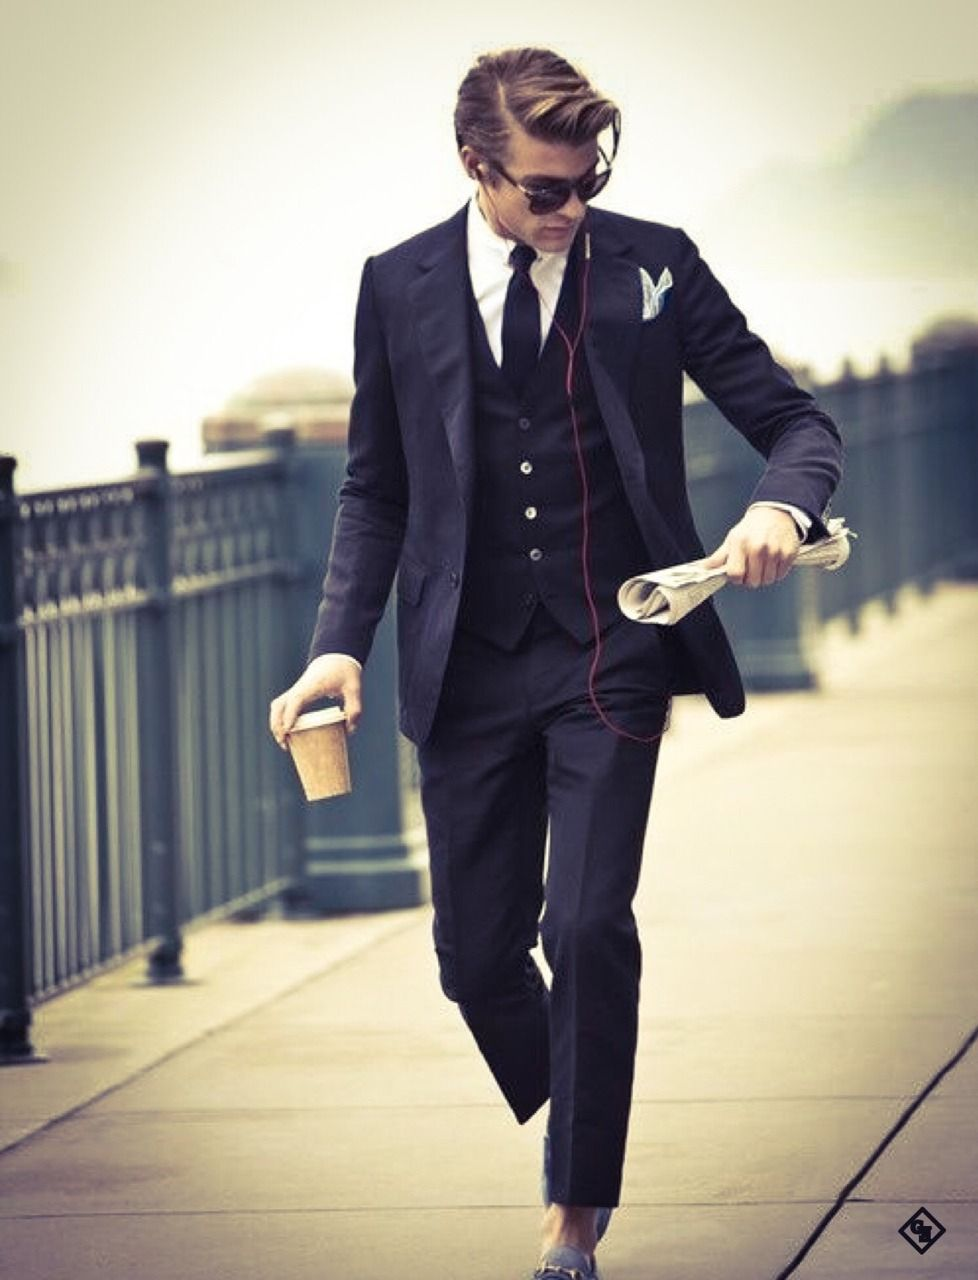 869e050d01e Follow The-Suit-Men for more style inspiration for men. Like the page